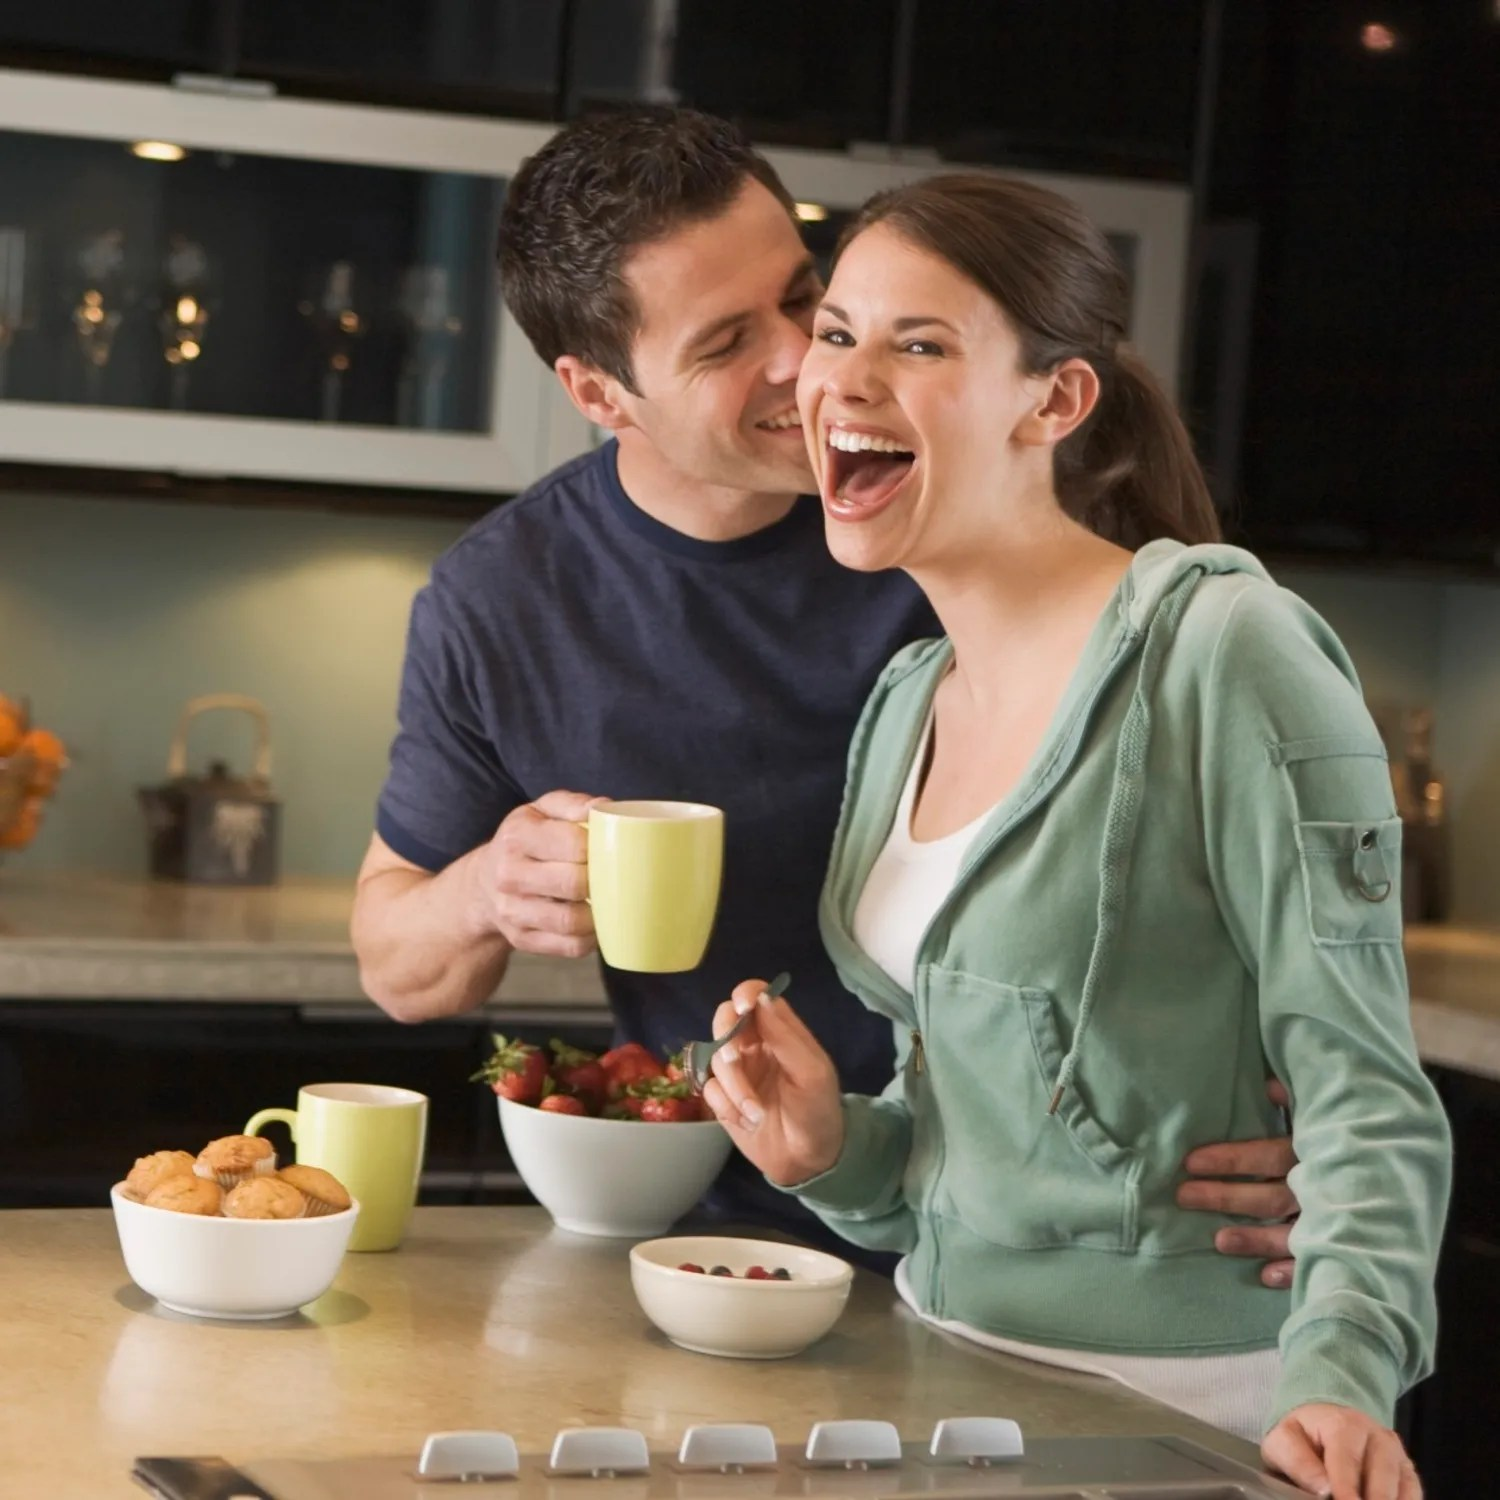 Dating Advice From A Married Couple They Re So Happy And